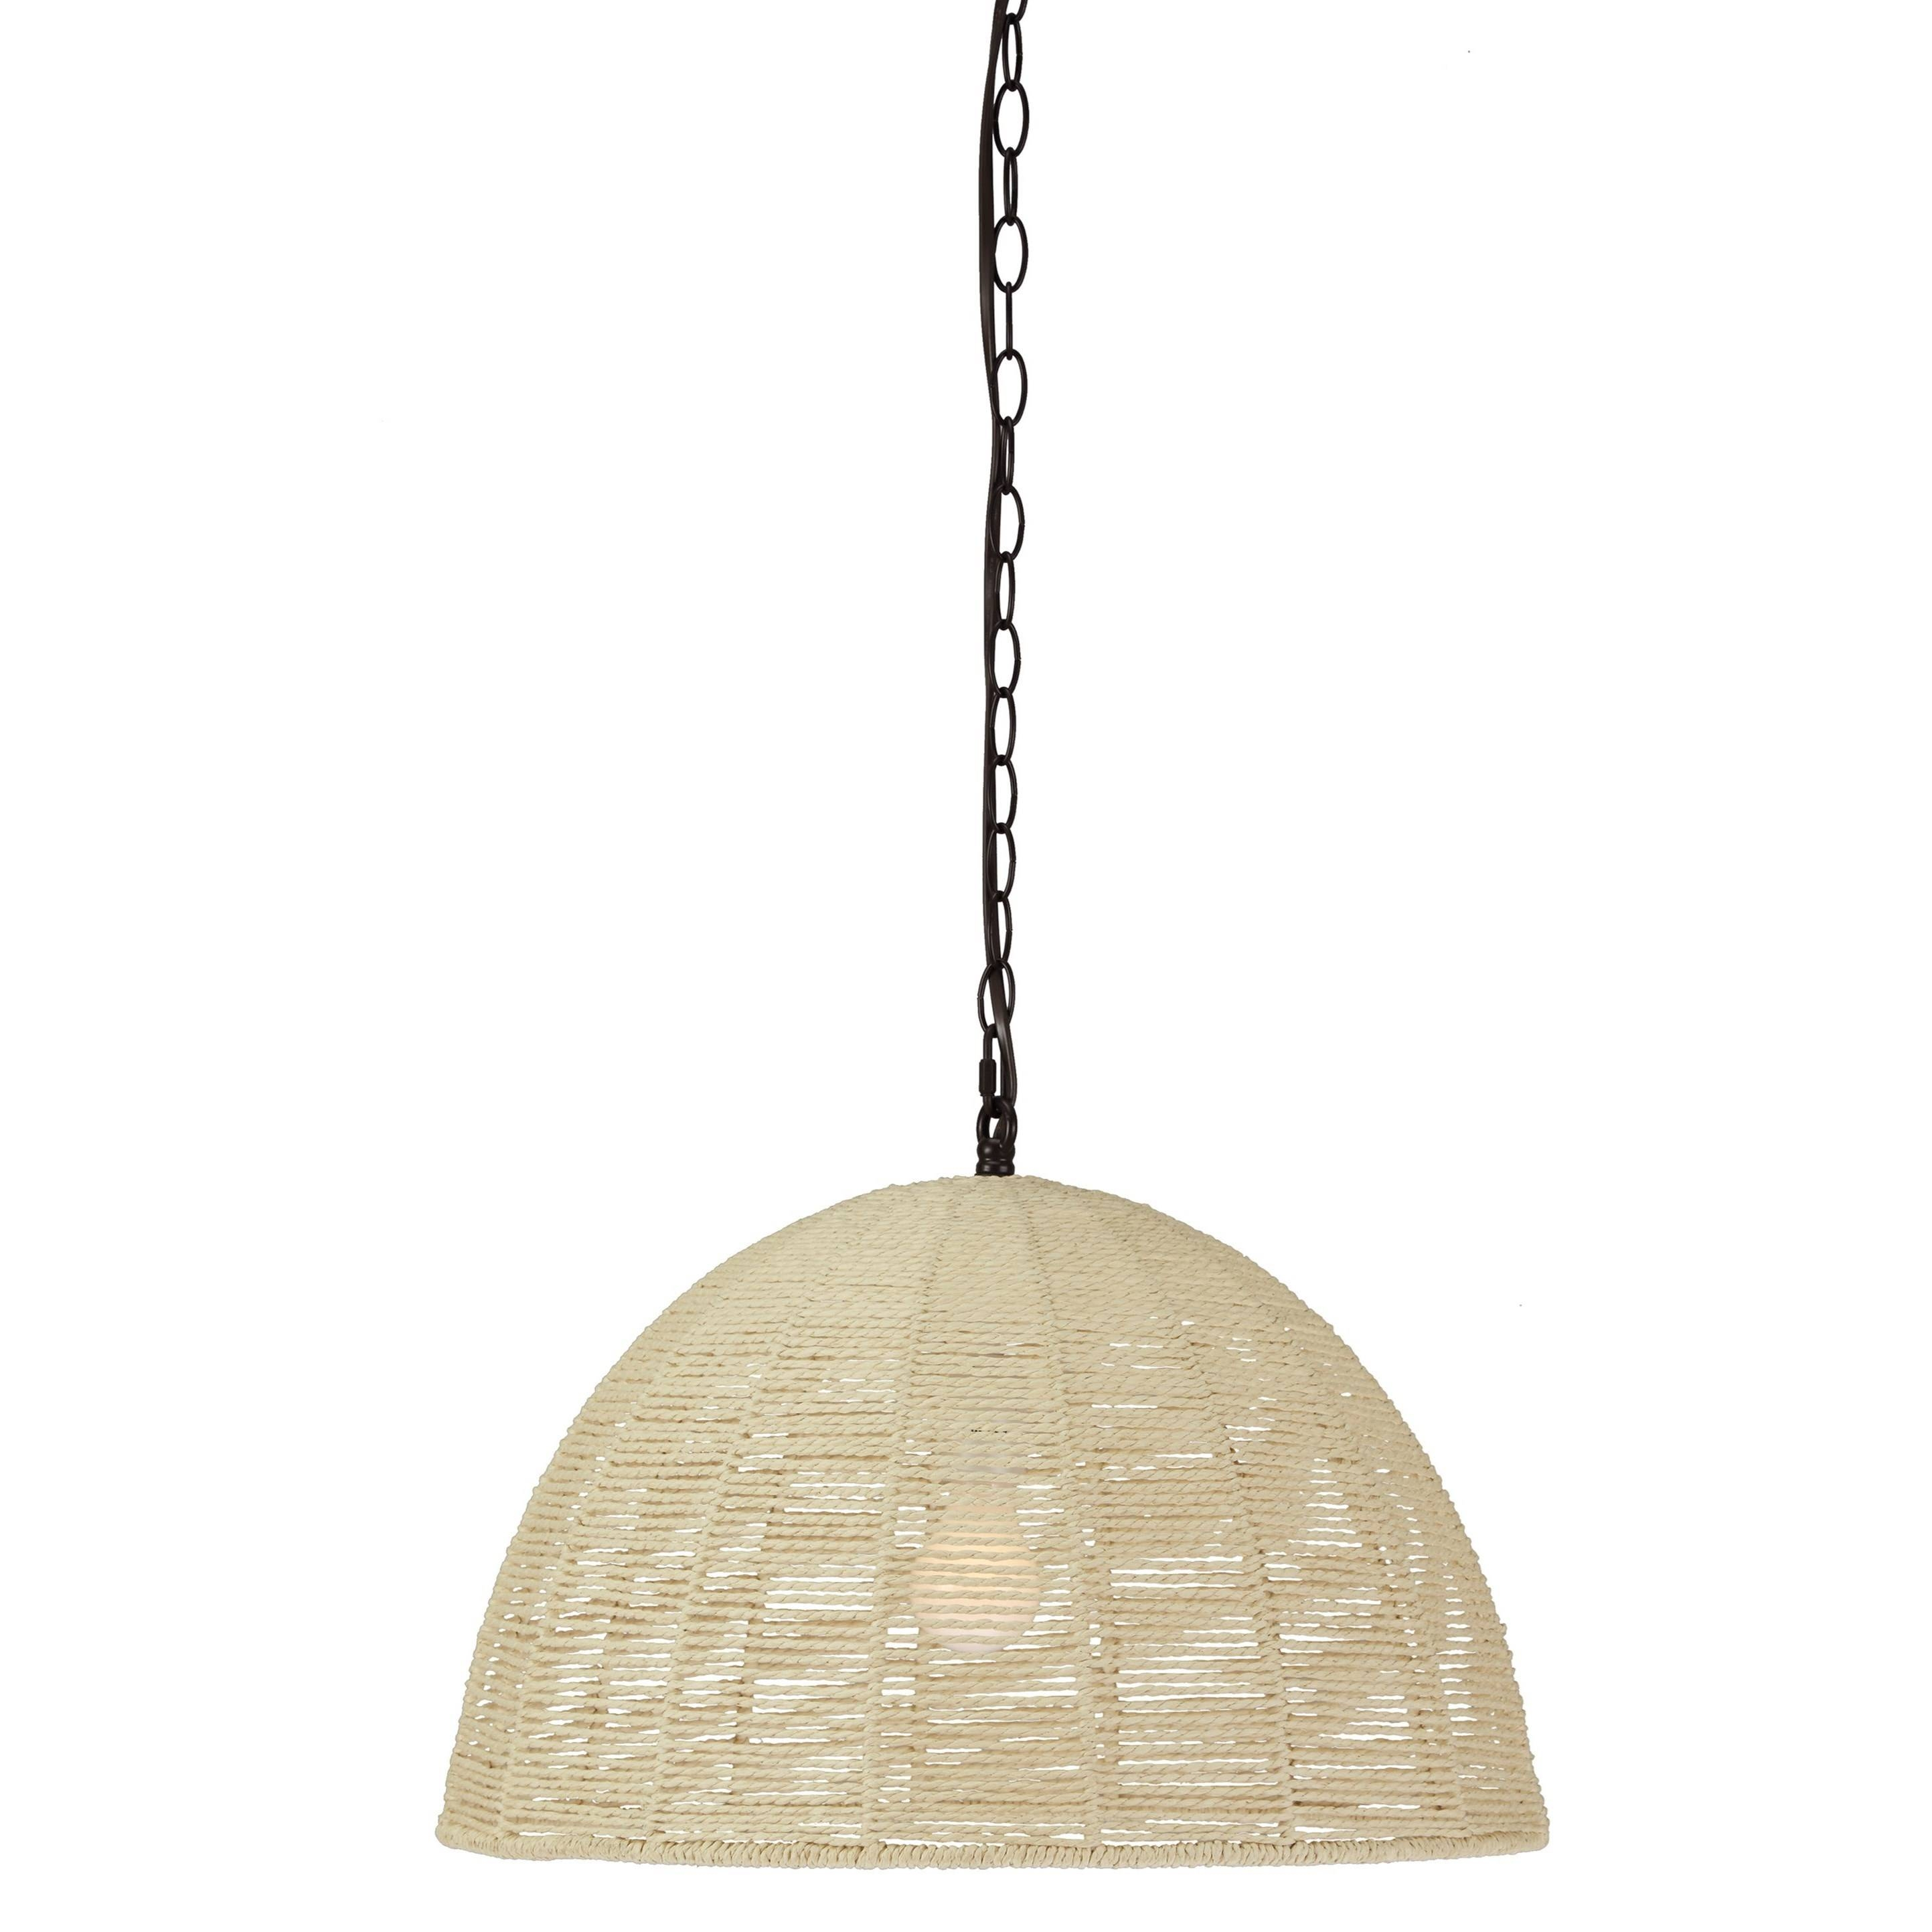 Signature Designashley Pendant Lights Jovan Paper Rope Natural throughout Natural Pendant Lights (Image 13 of 15)